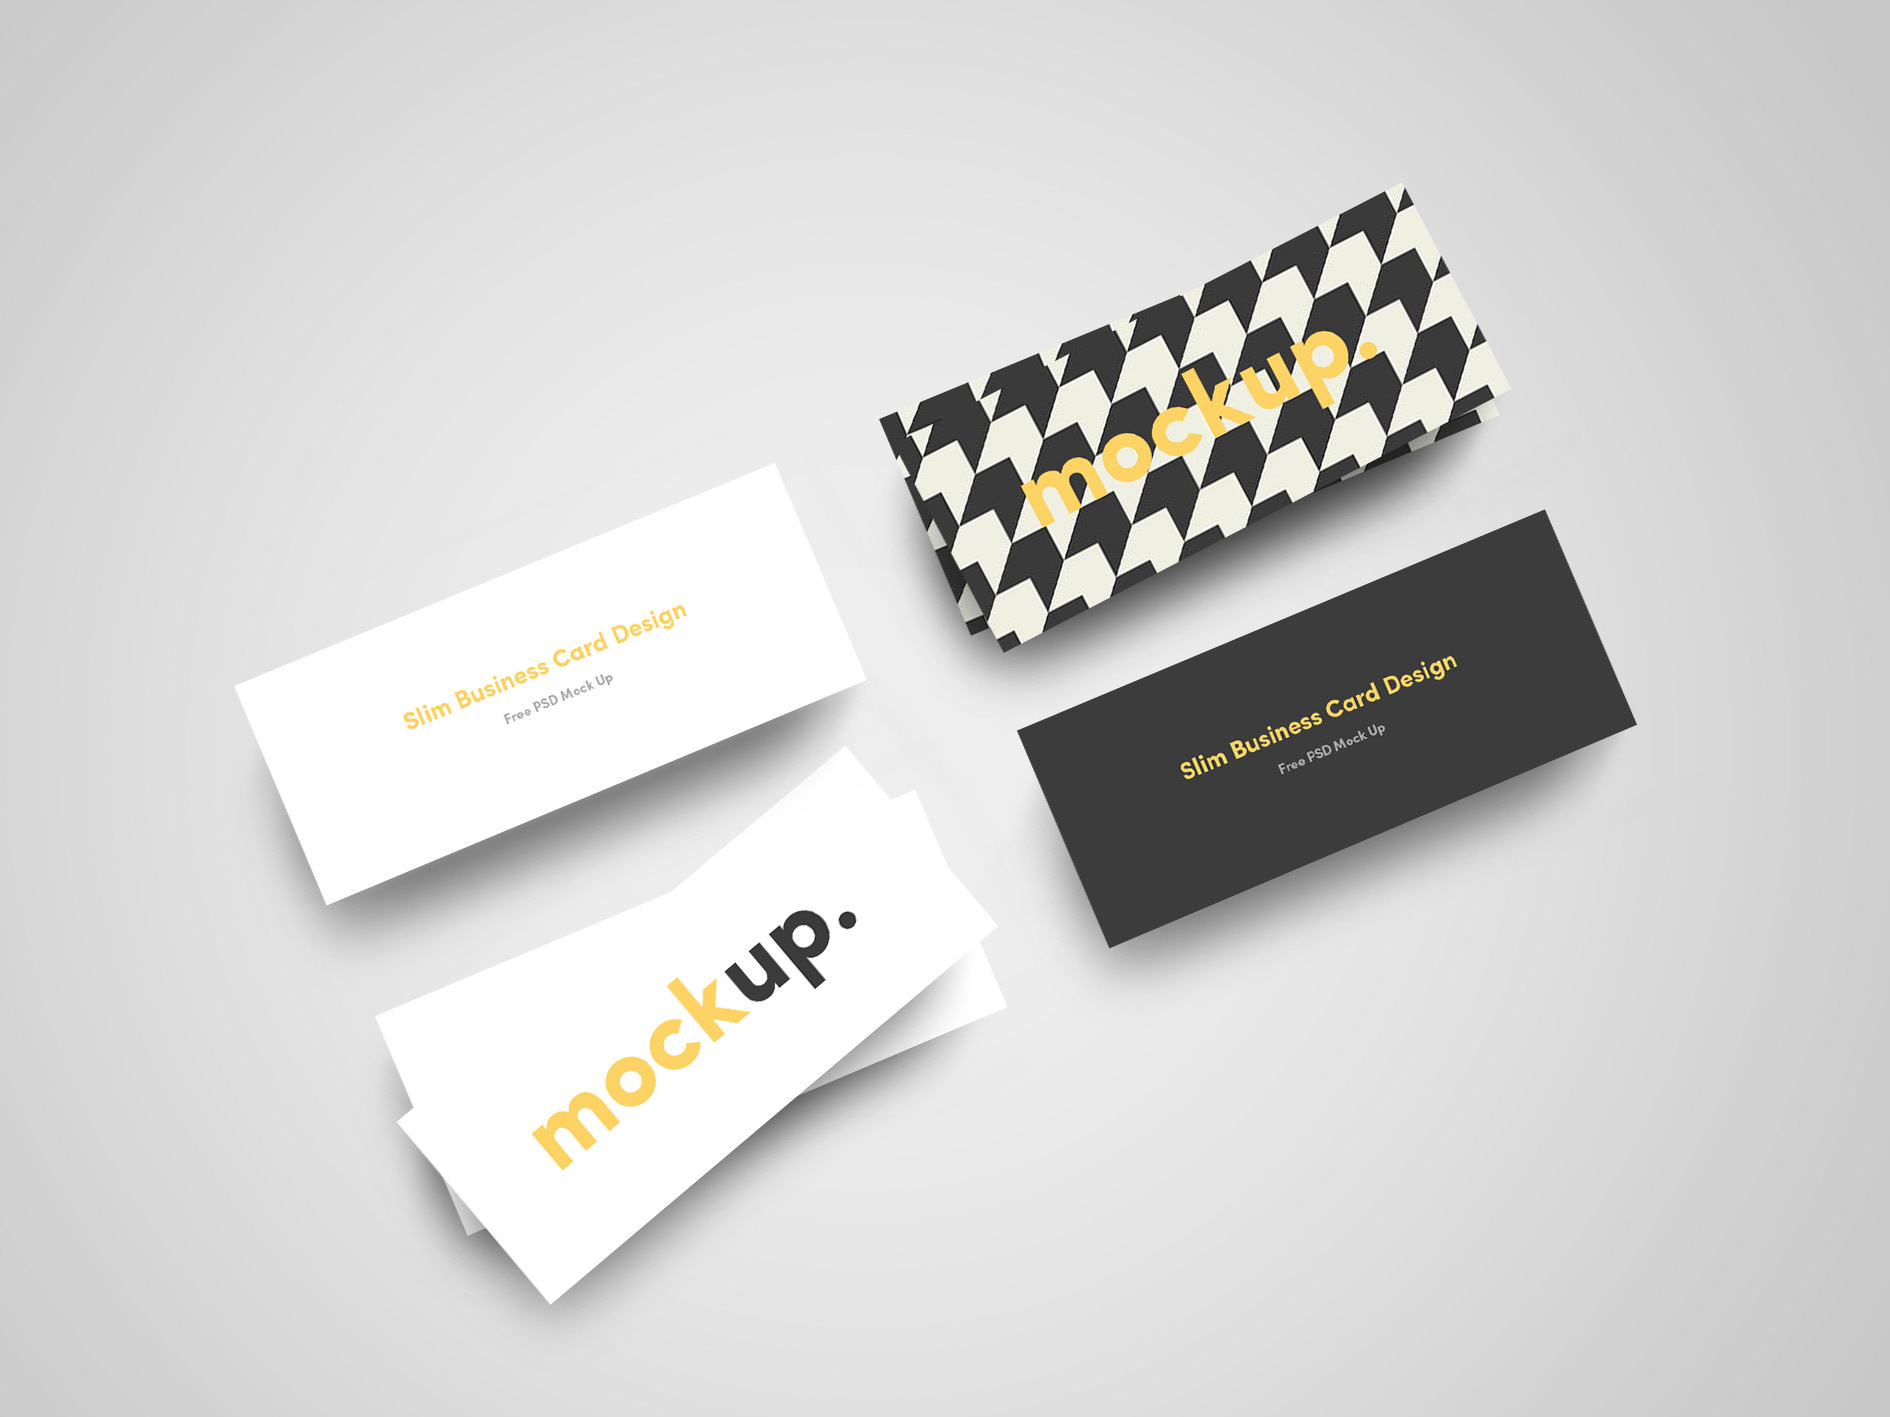 Jan-Alfred Barclay - Slim Business Card Mock Up (FREE)